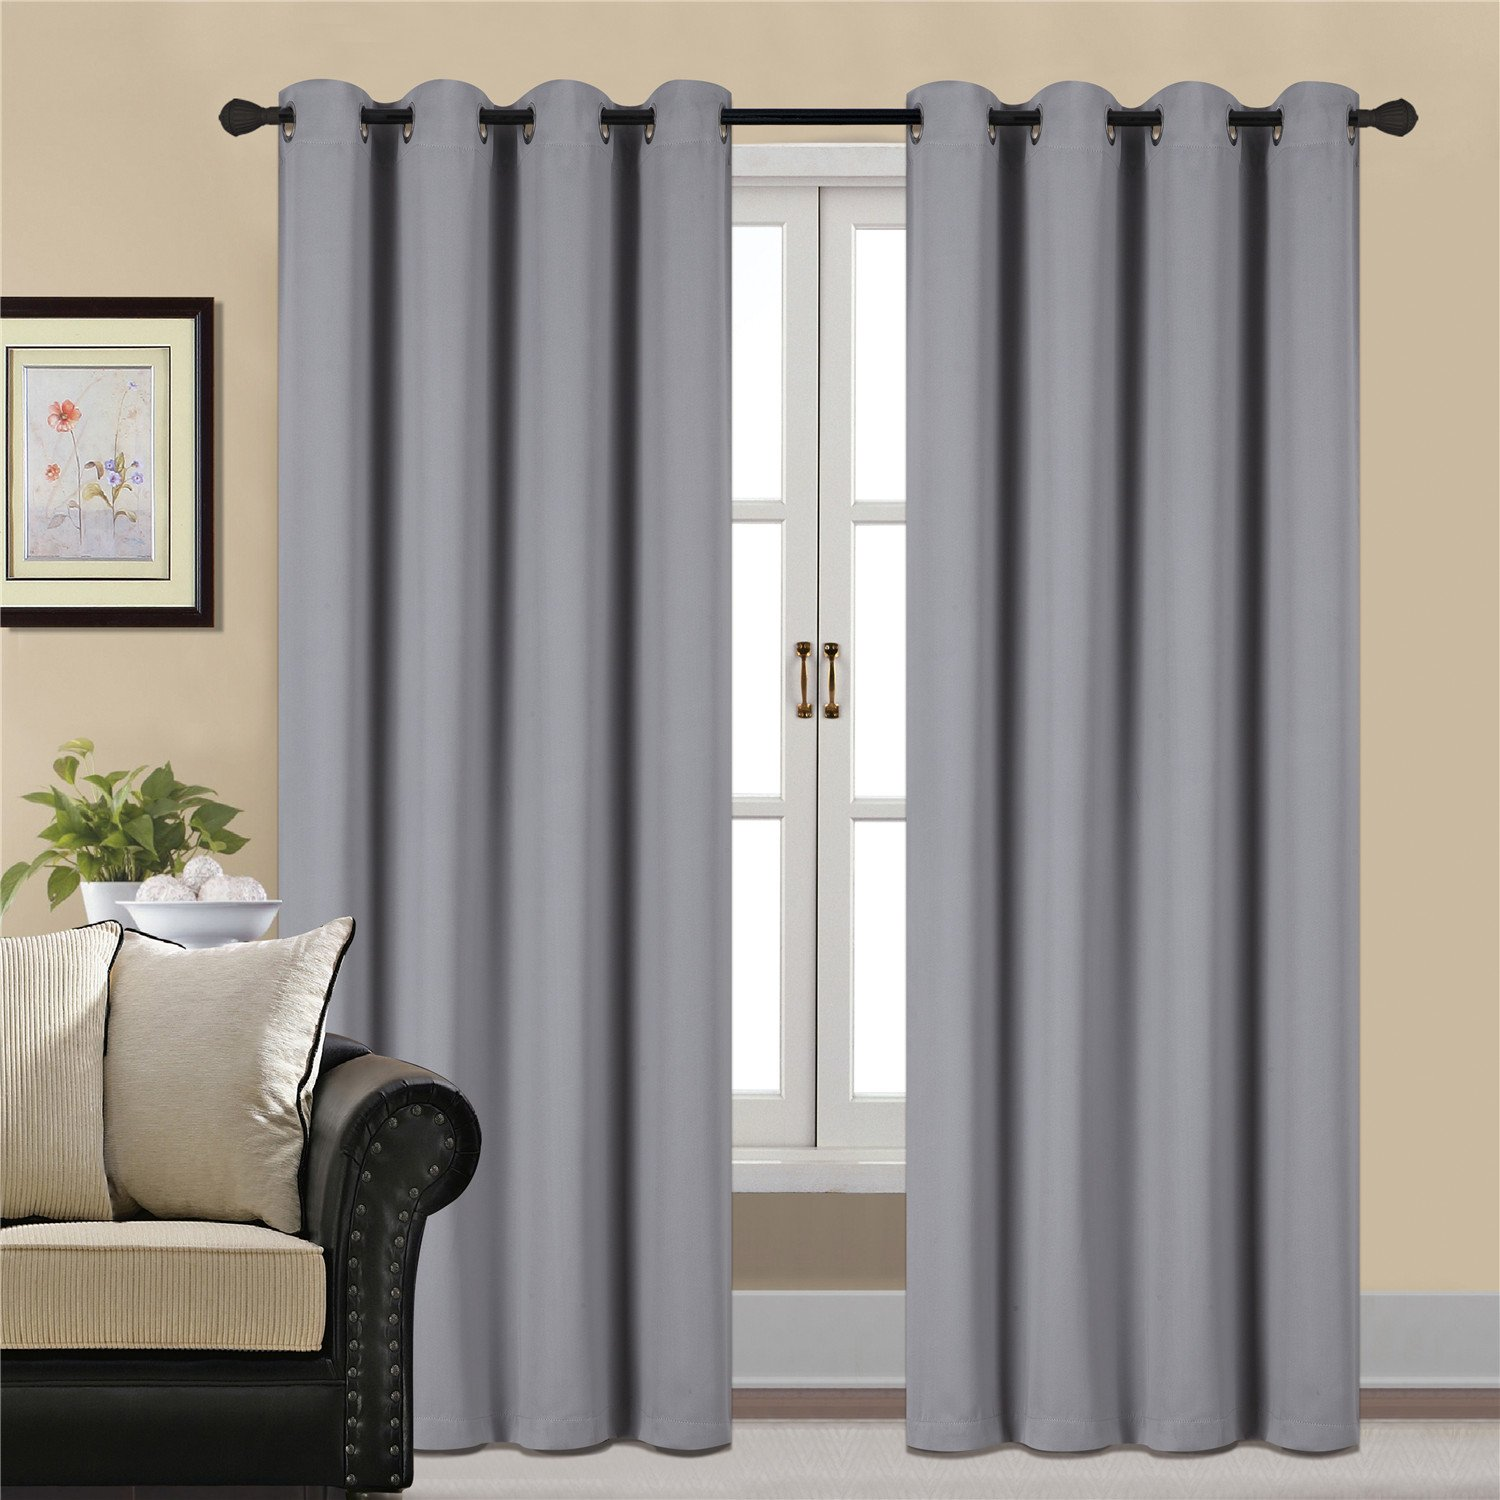 Yellow And Grey Window Curtain Panels Recipes With More